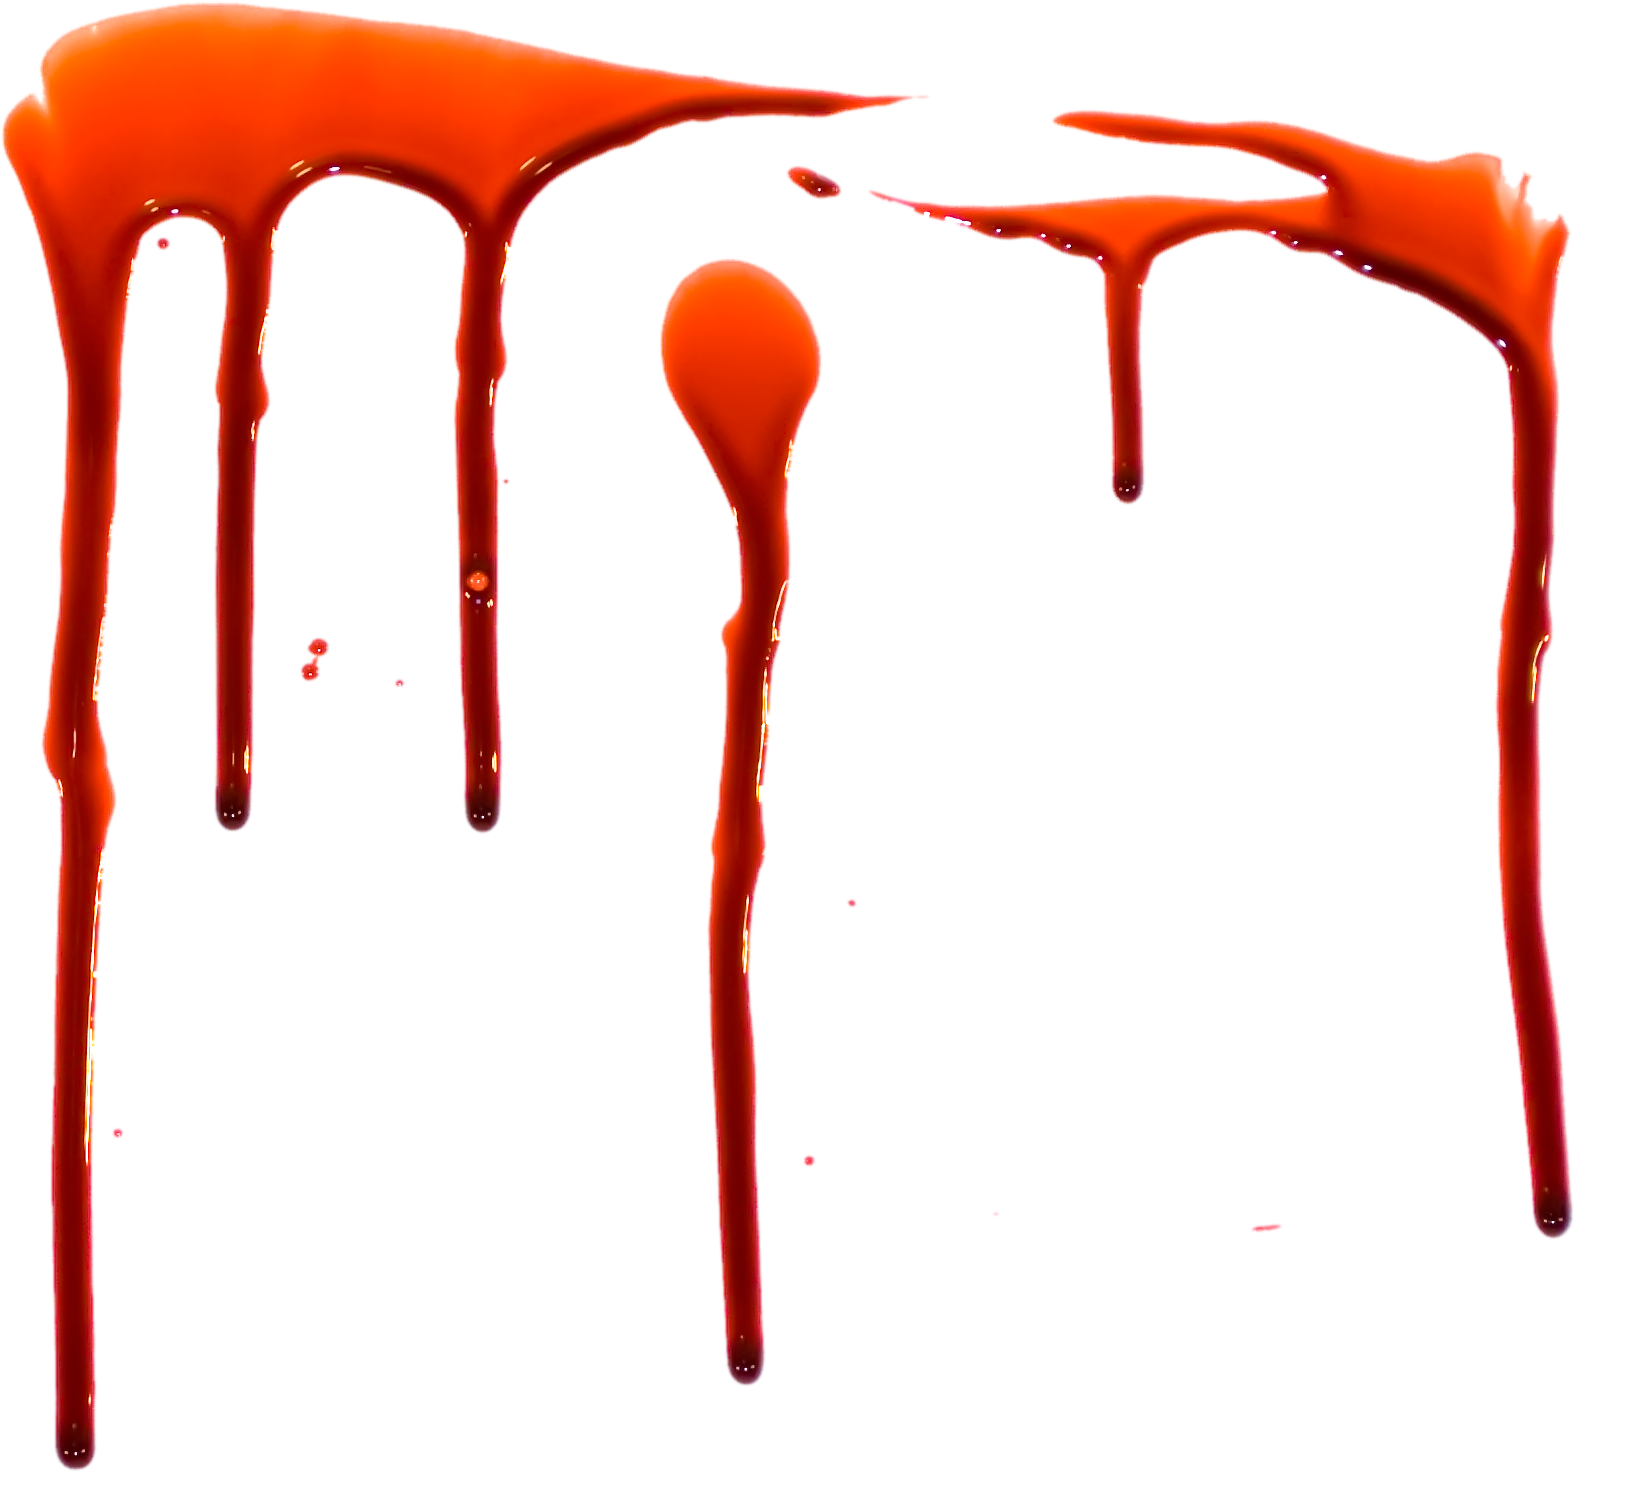 Dripping blood png. Images free download splashes